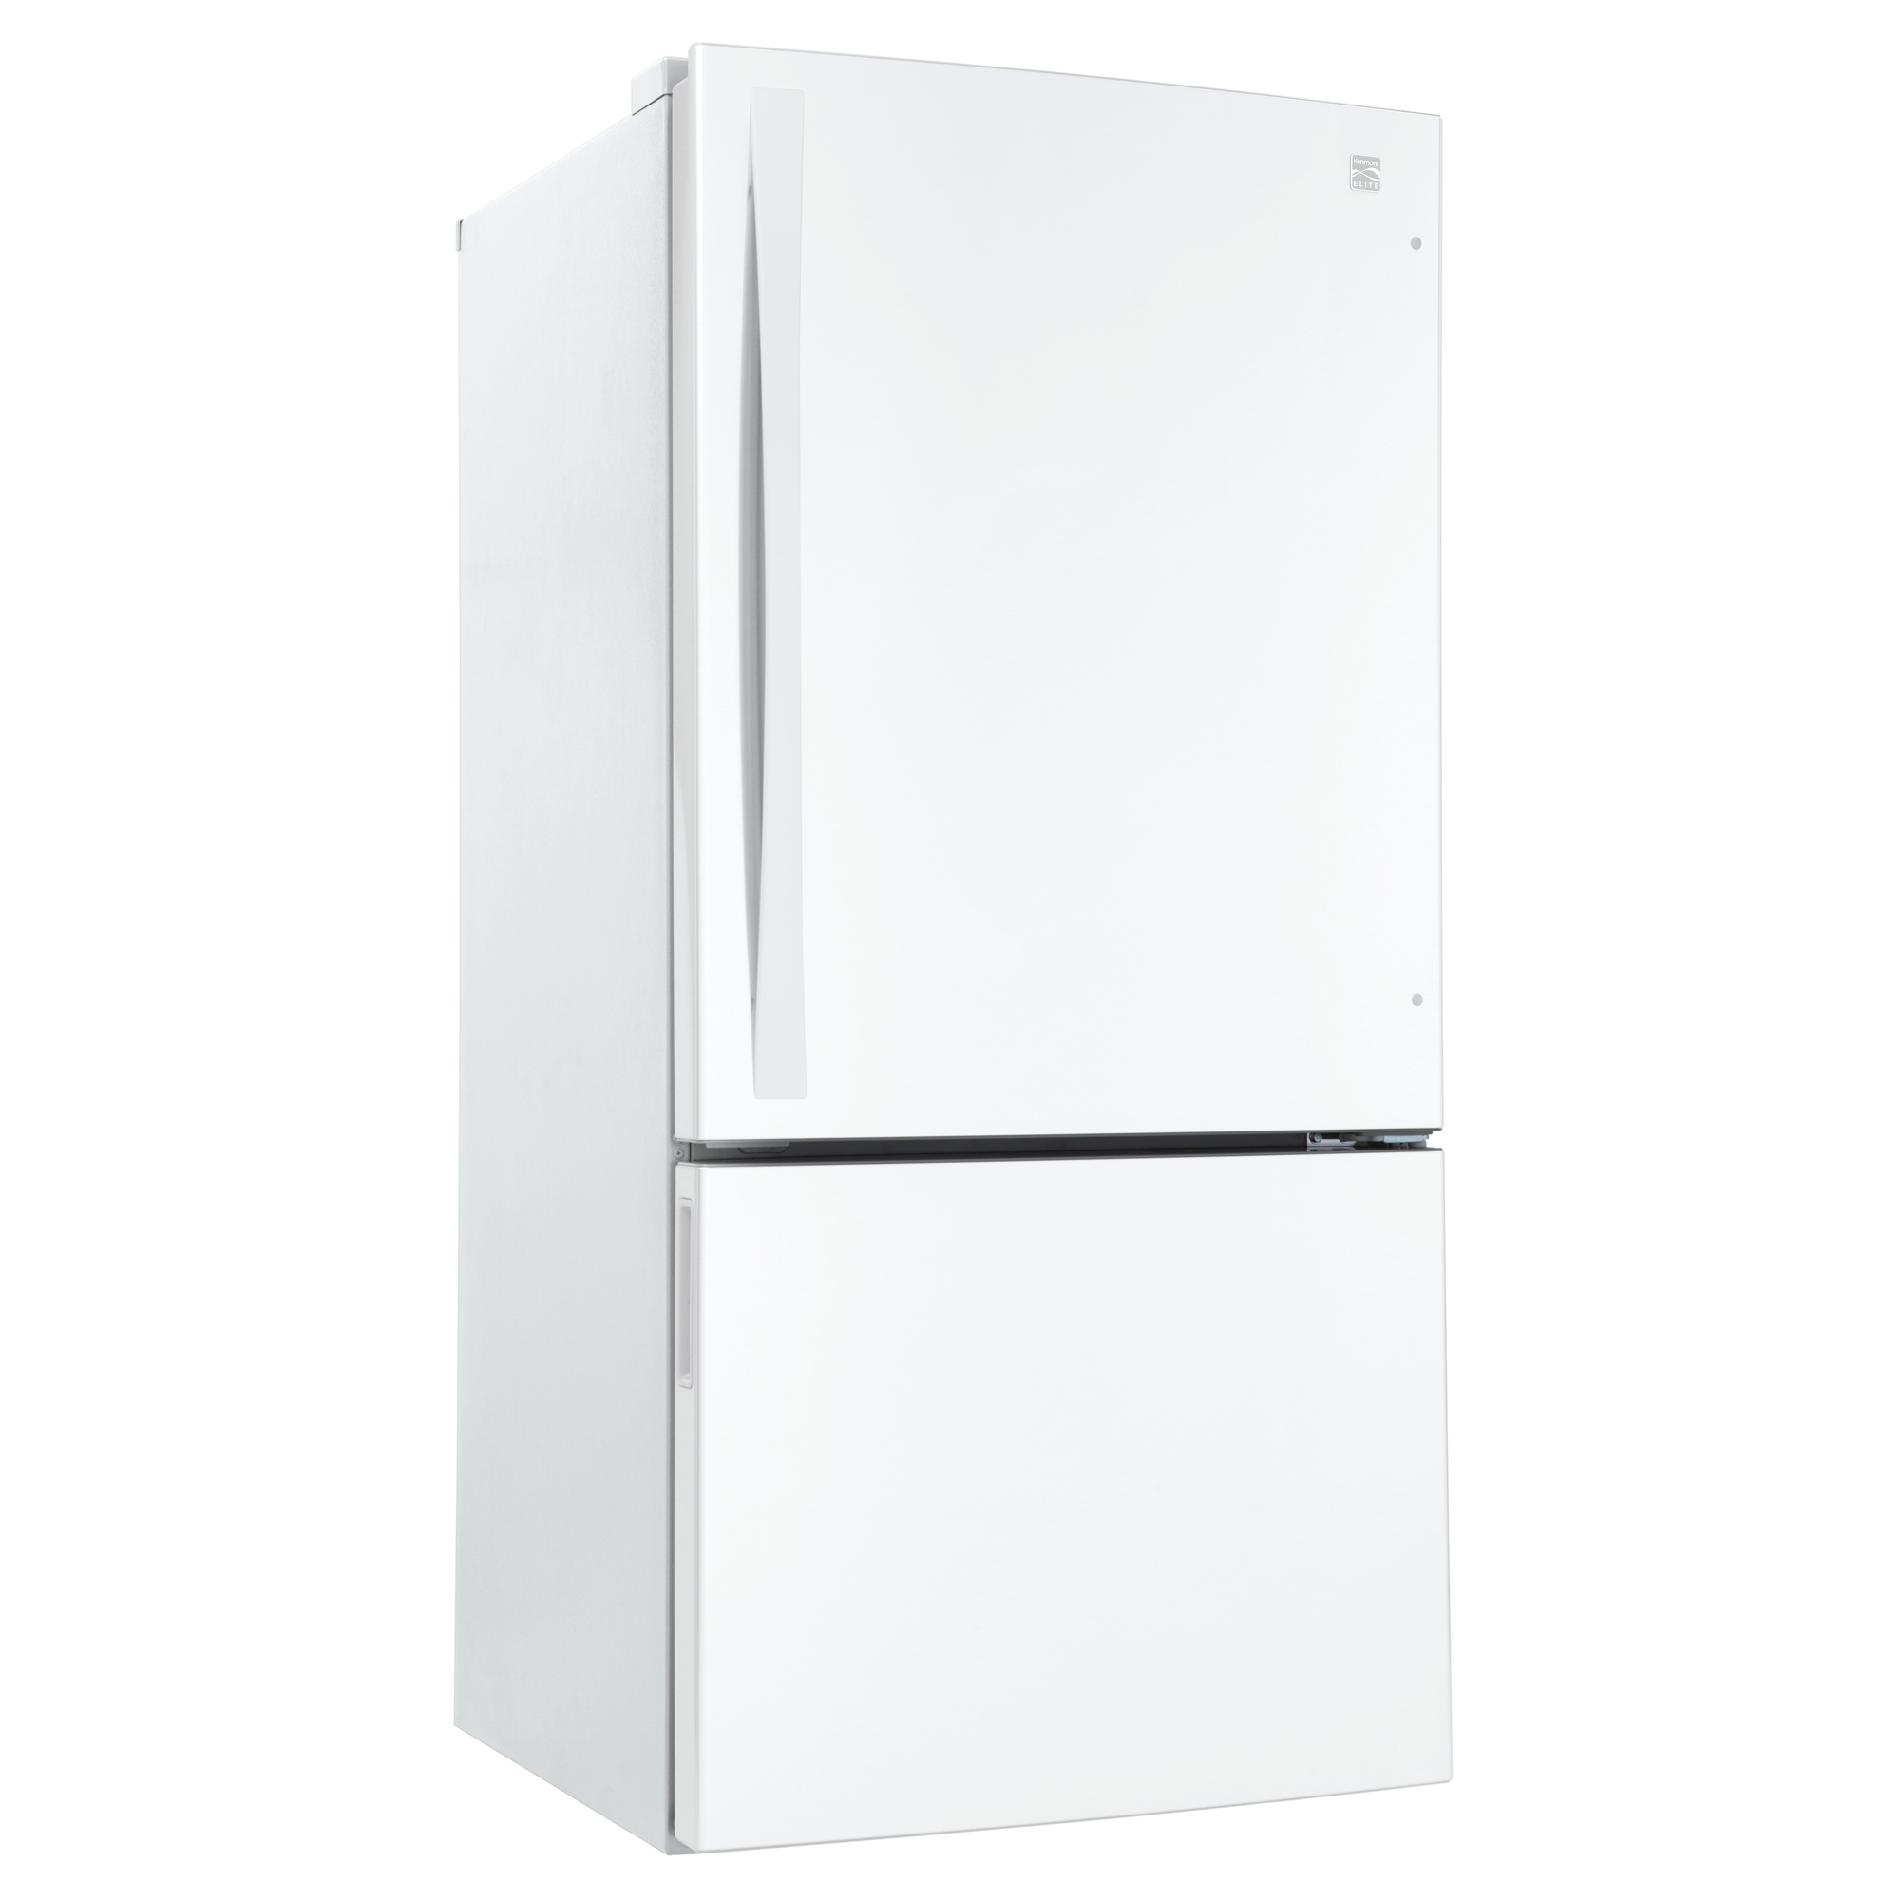 Kenmore Elite 24 cu. ft. Bottom-Freezer Refrigerator - White